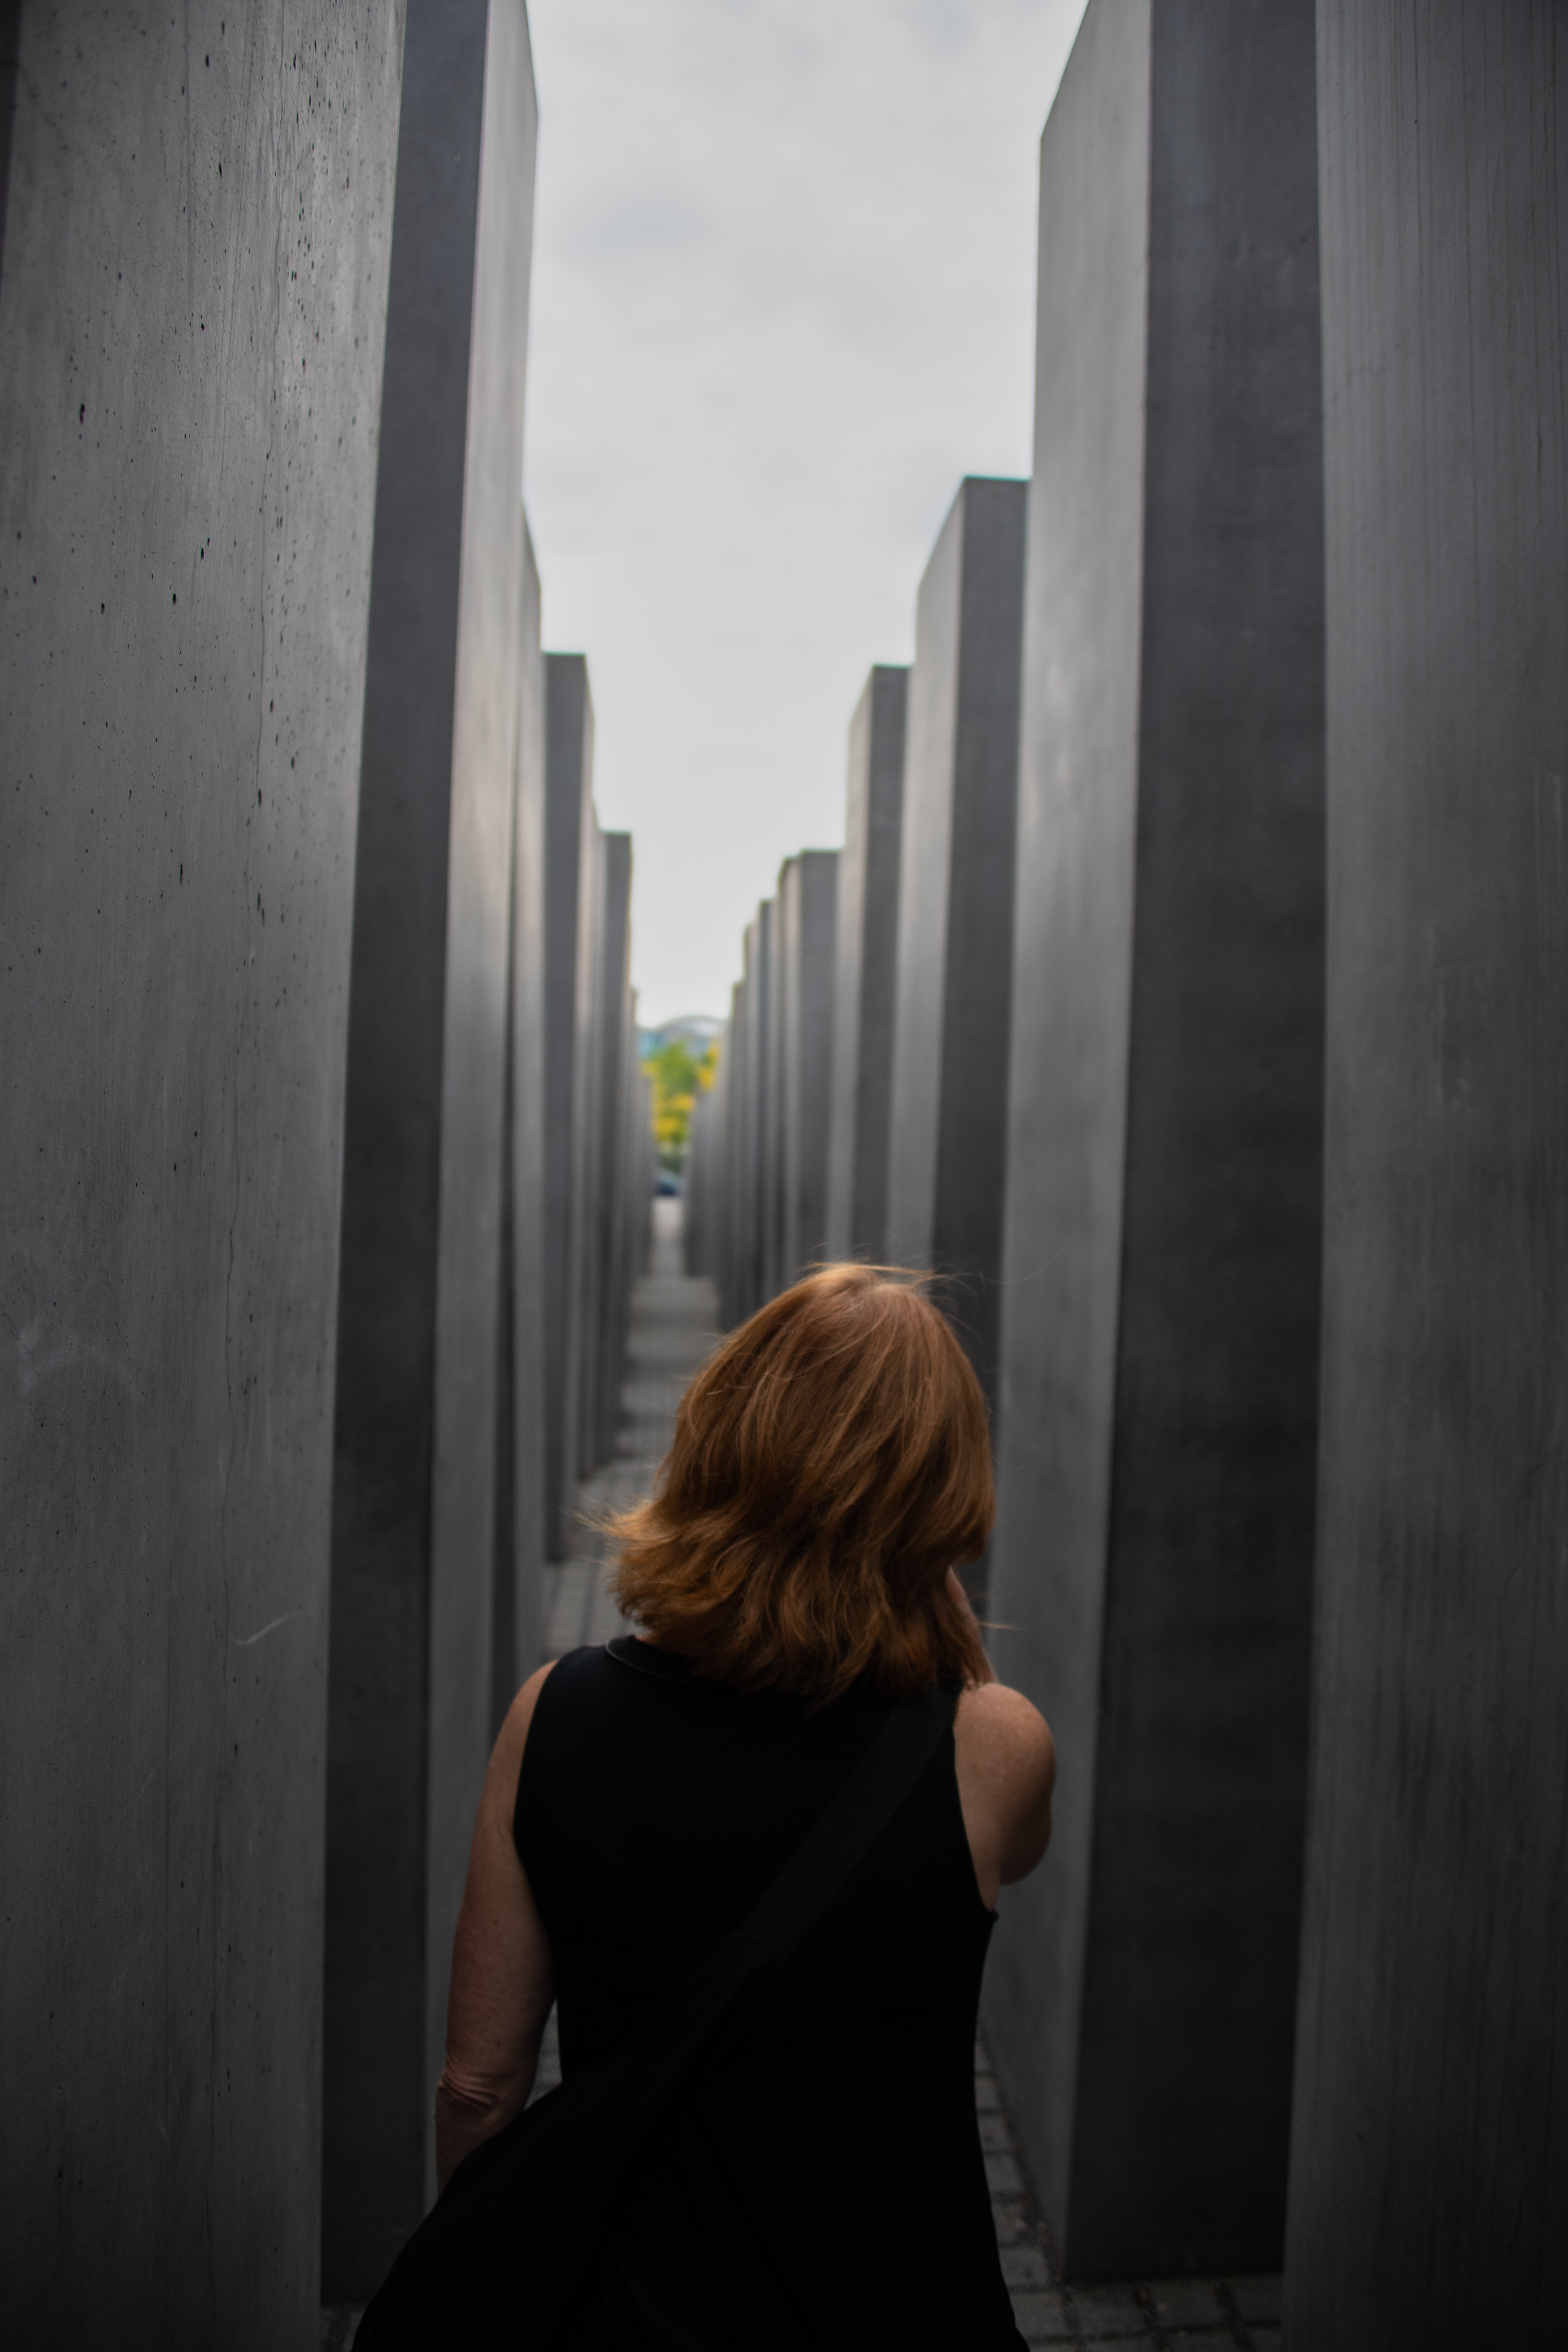 Melissa walking through the Memorial to the Murdered Jews of Europe in Berlin, Germany